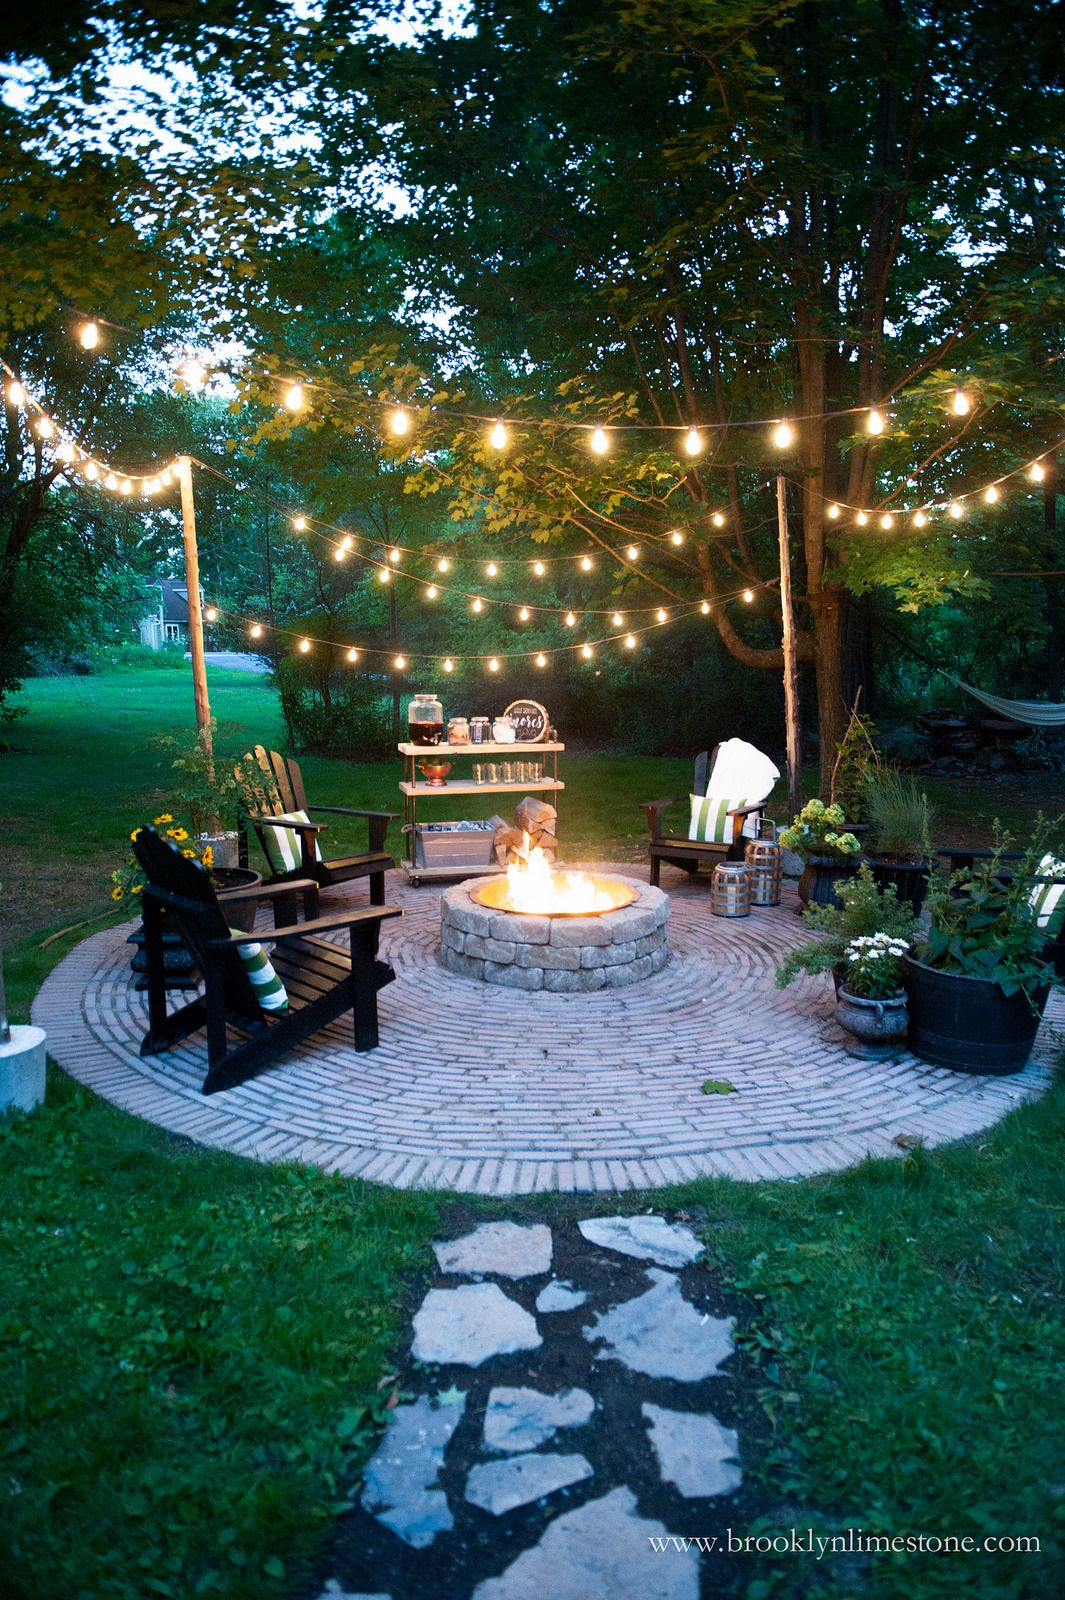 Camino Da Giardino Design 18 Fire Pit Ideas For Your Backyard 3d Arredamento Giardino